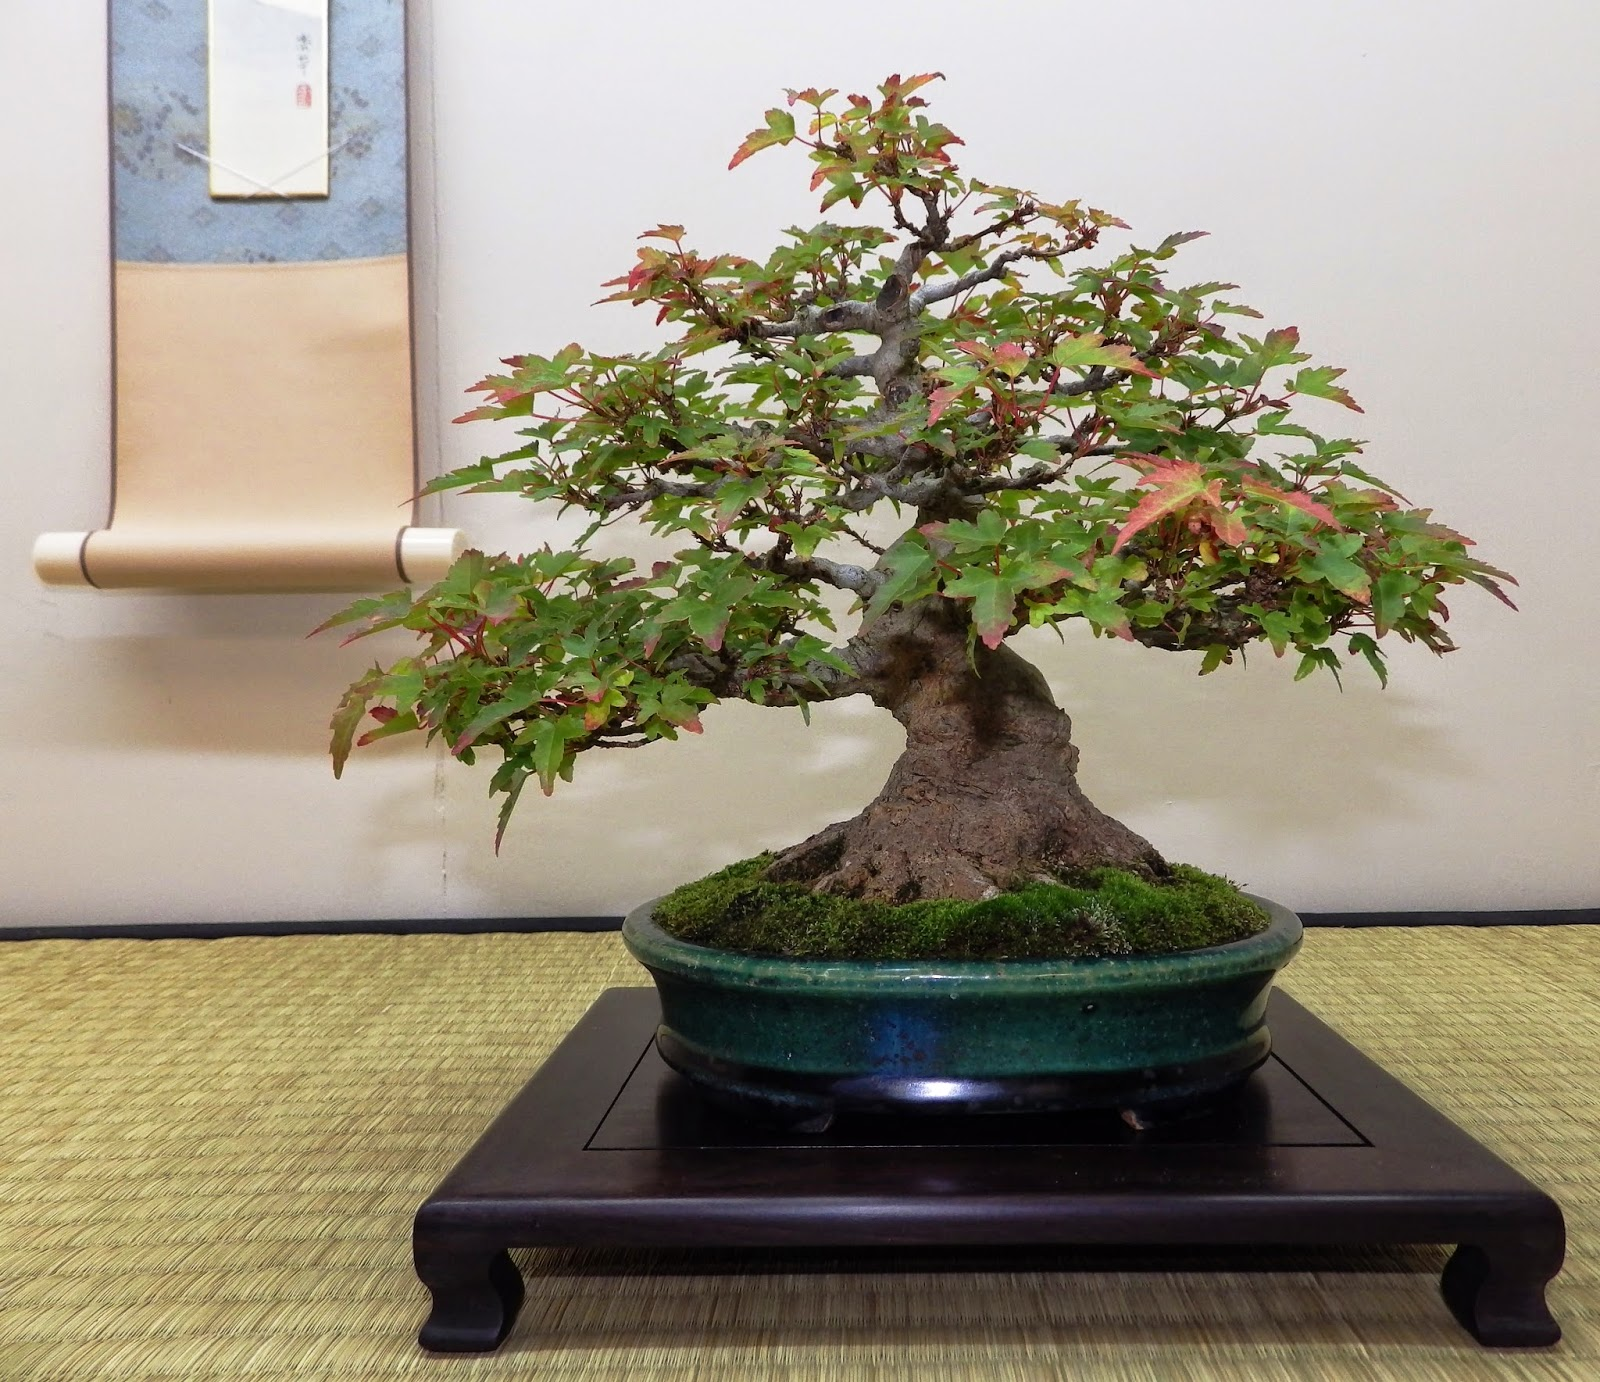 Bespoke Bonsai Stands October 2014